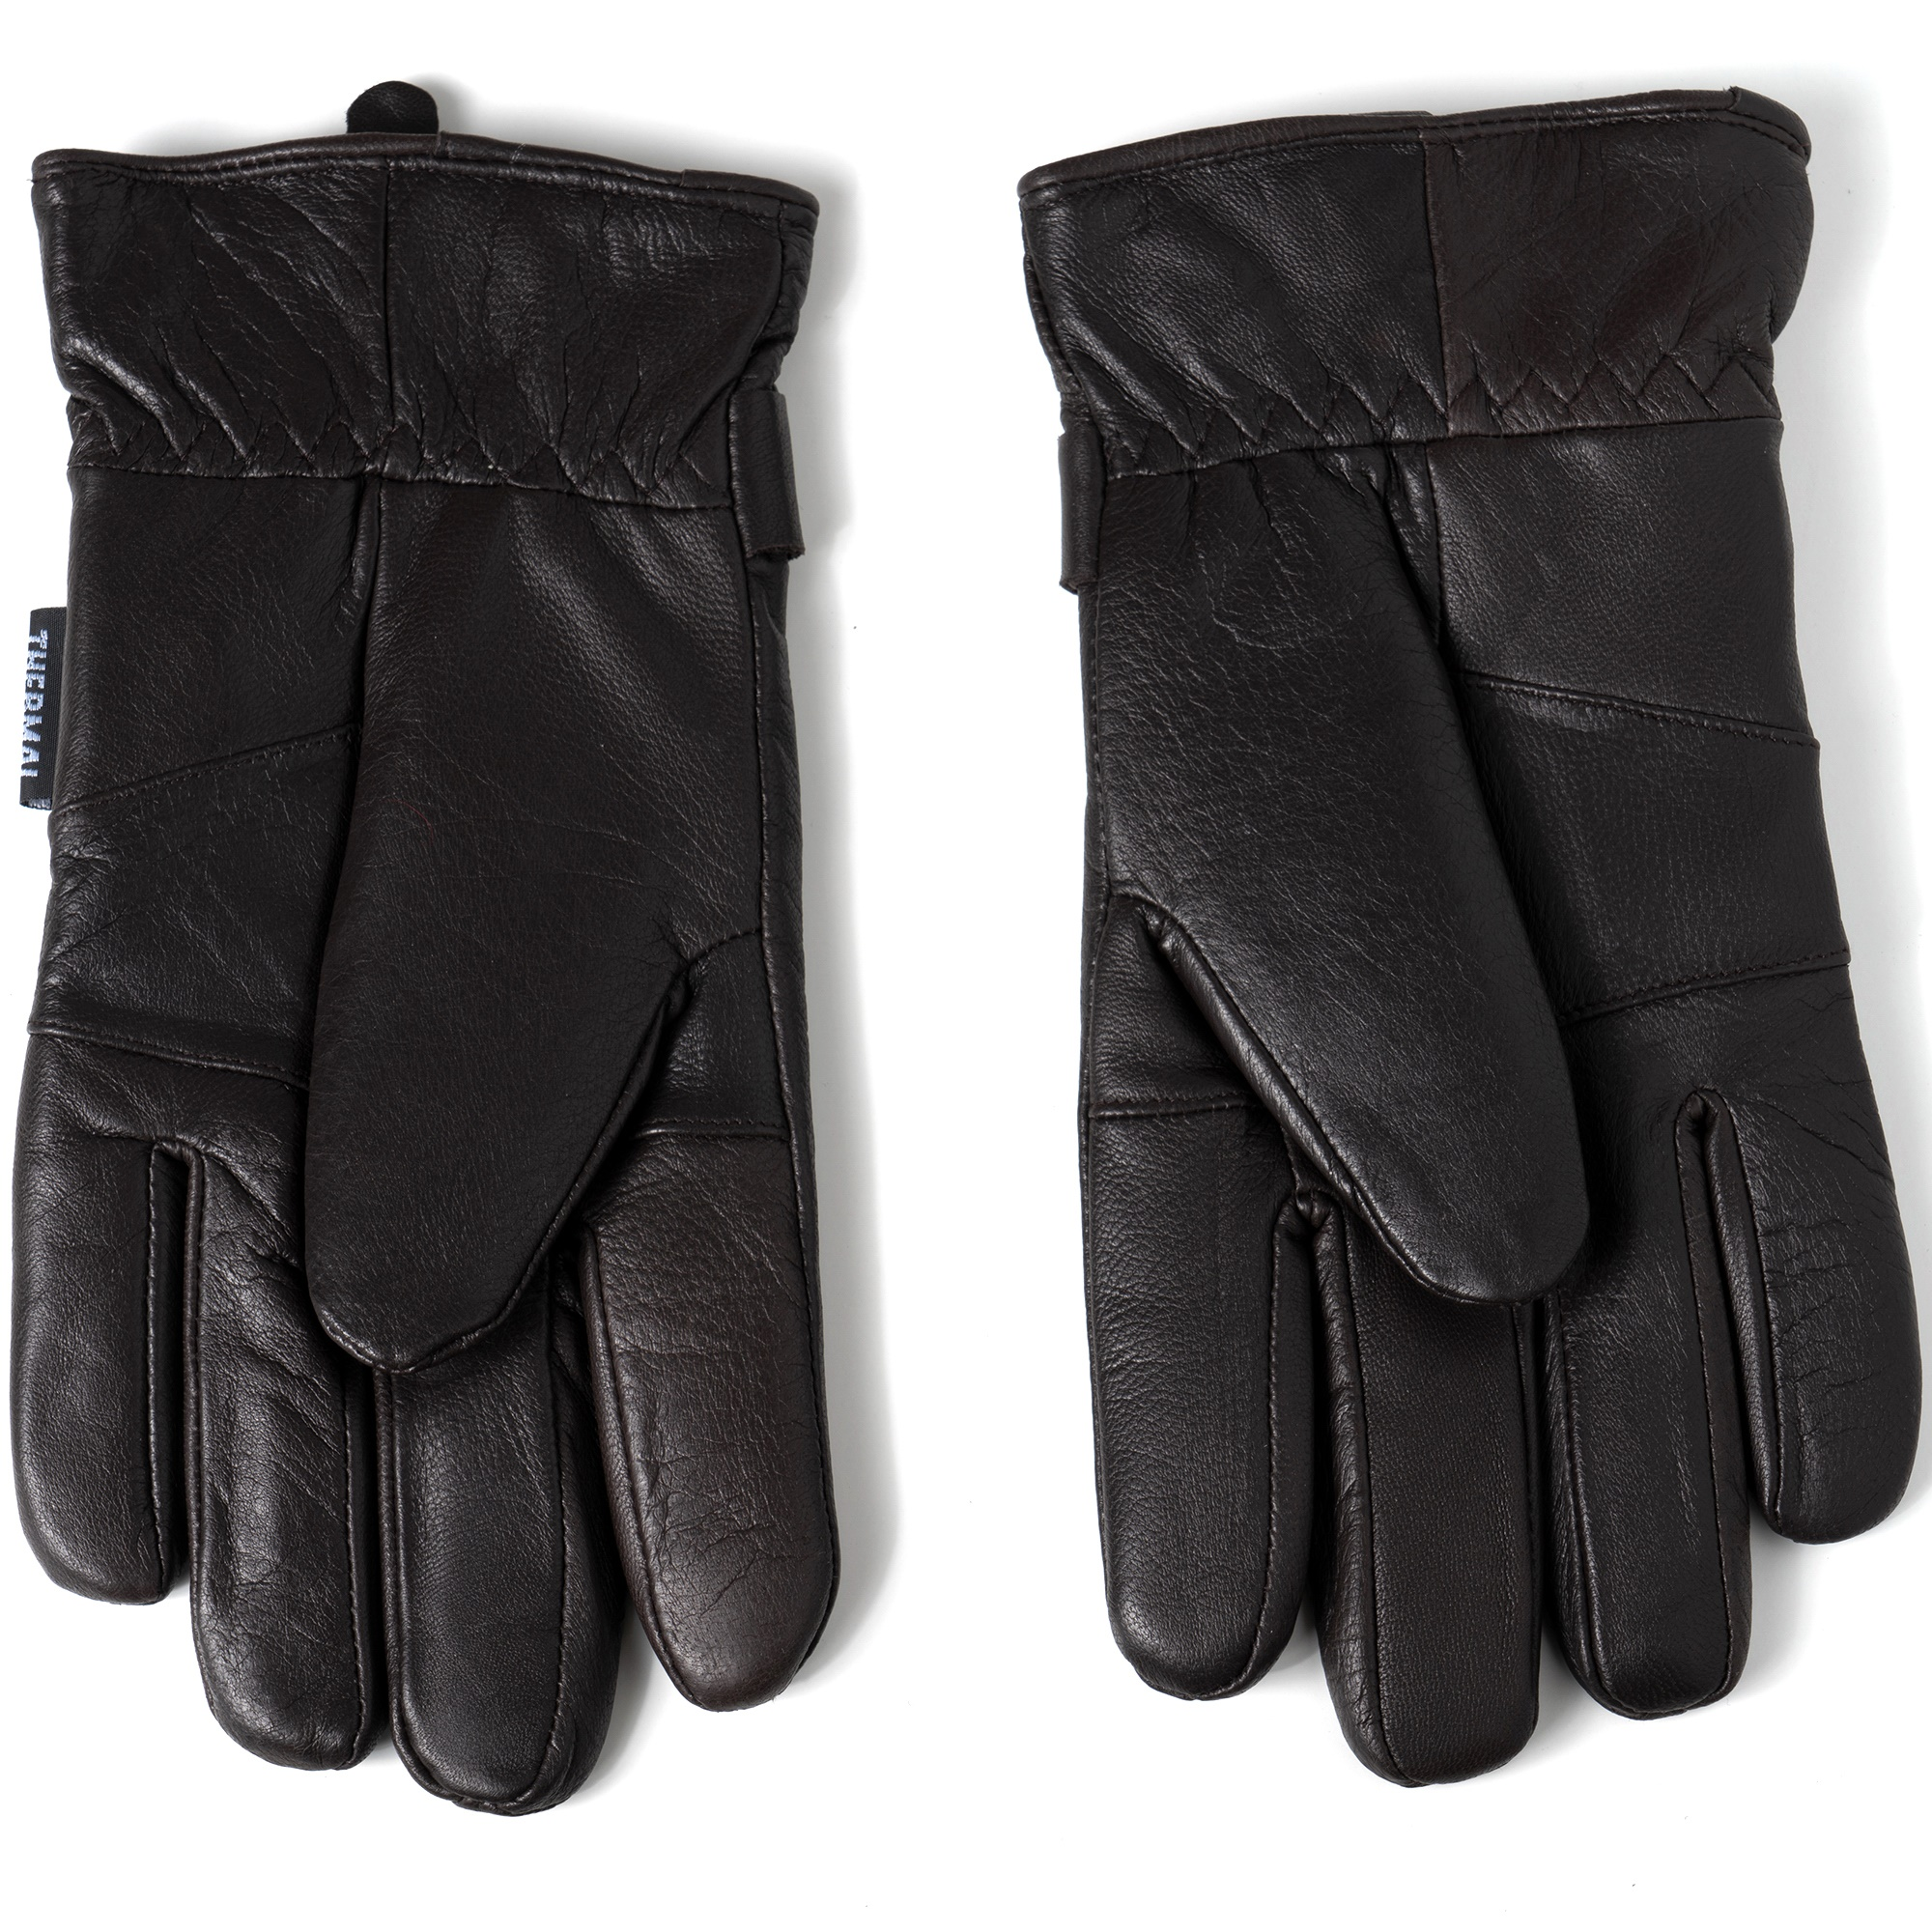 Alpine-Swiss-Mens-Gloves-Dressy-Genuine-Leather-Warm-Thermal-Lined-Wrist-Strap thumbnail 25